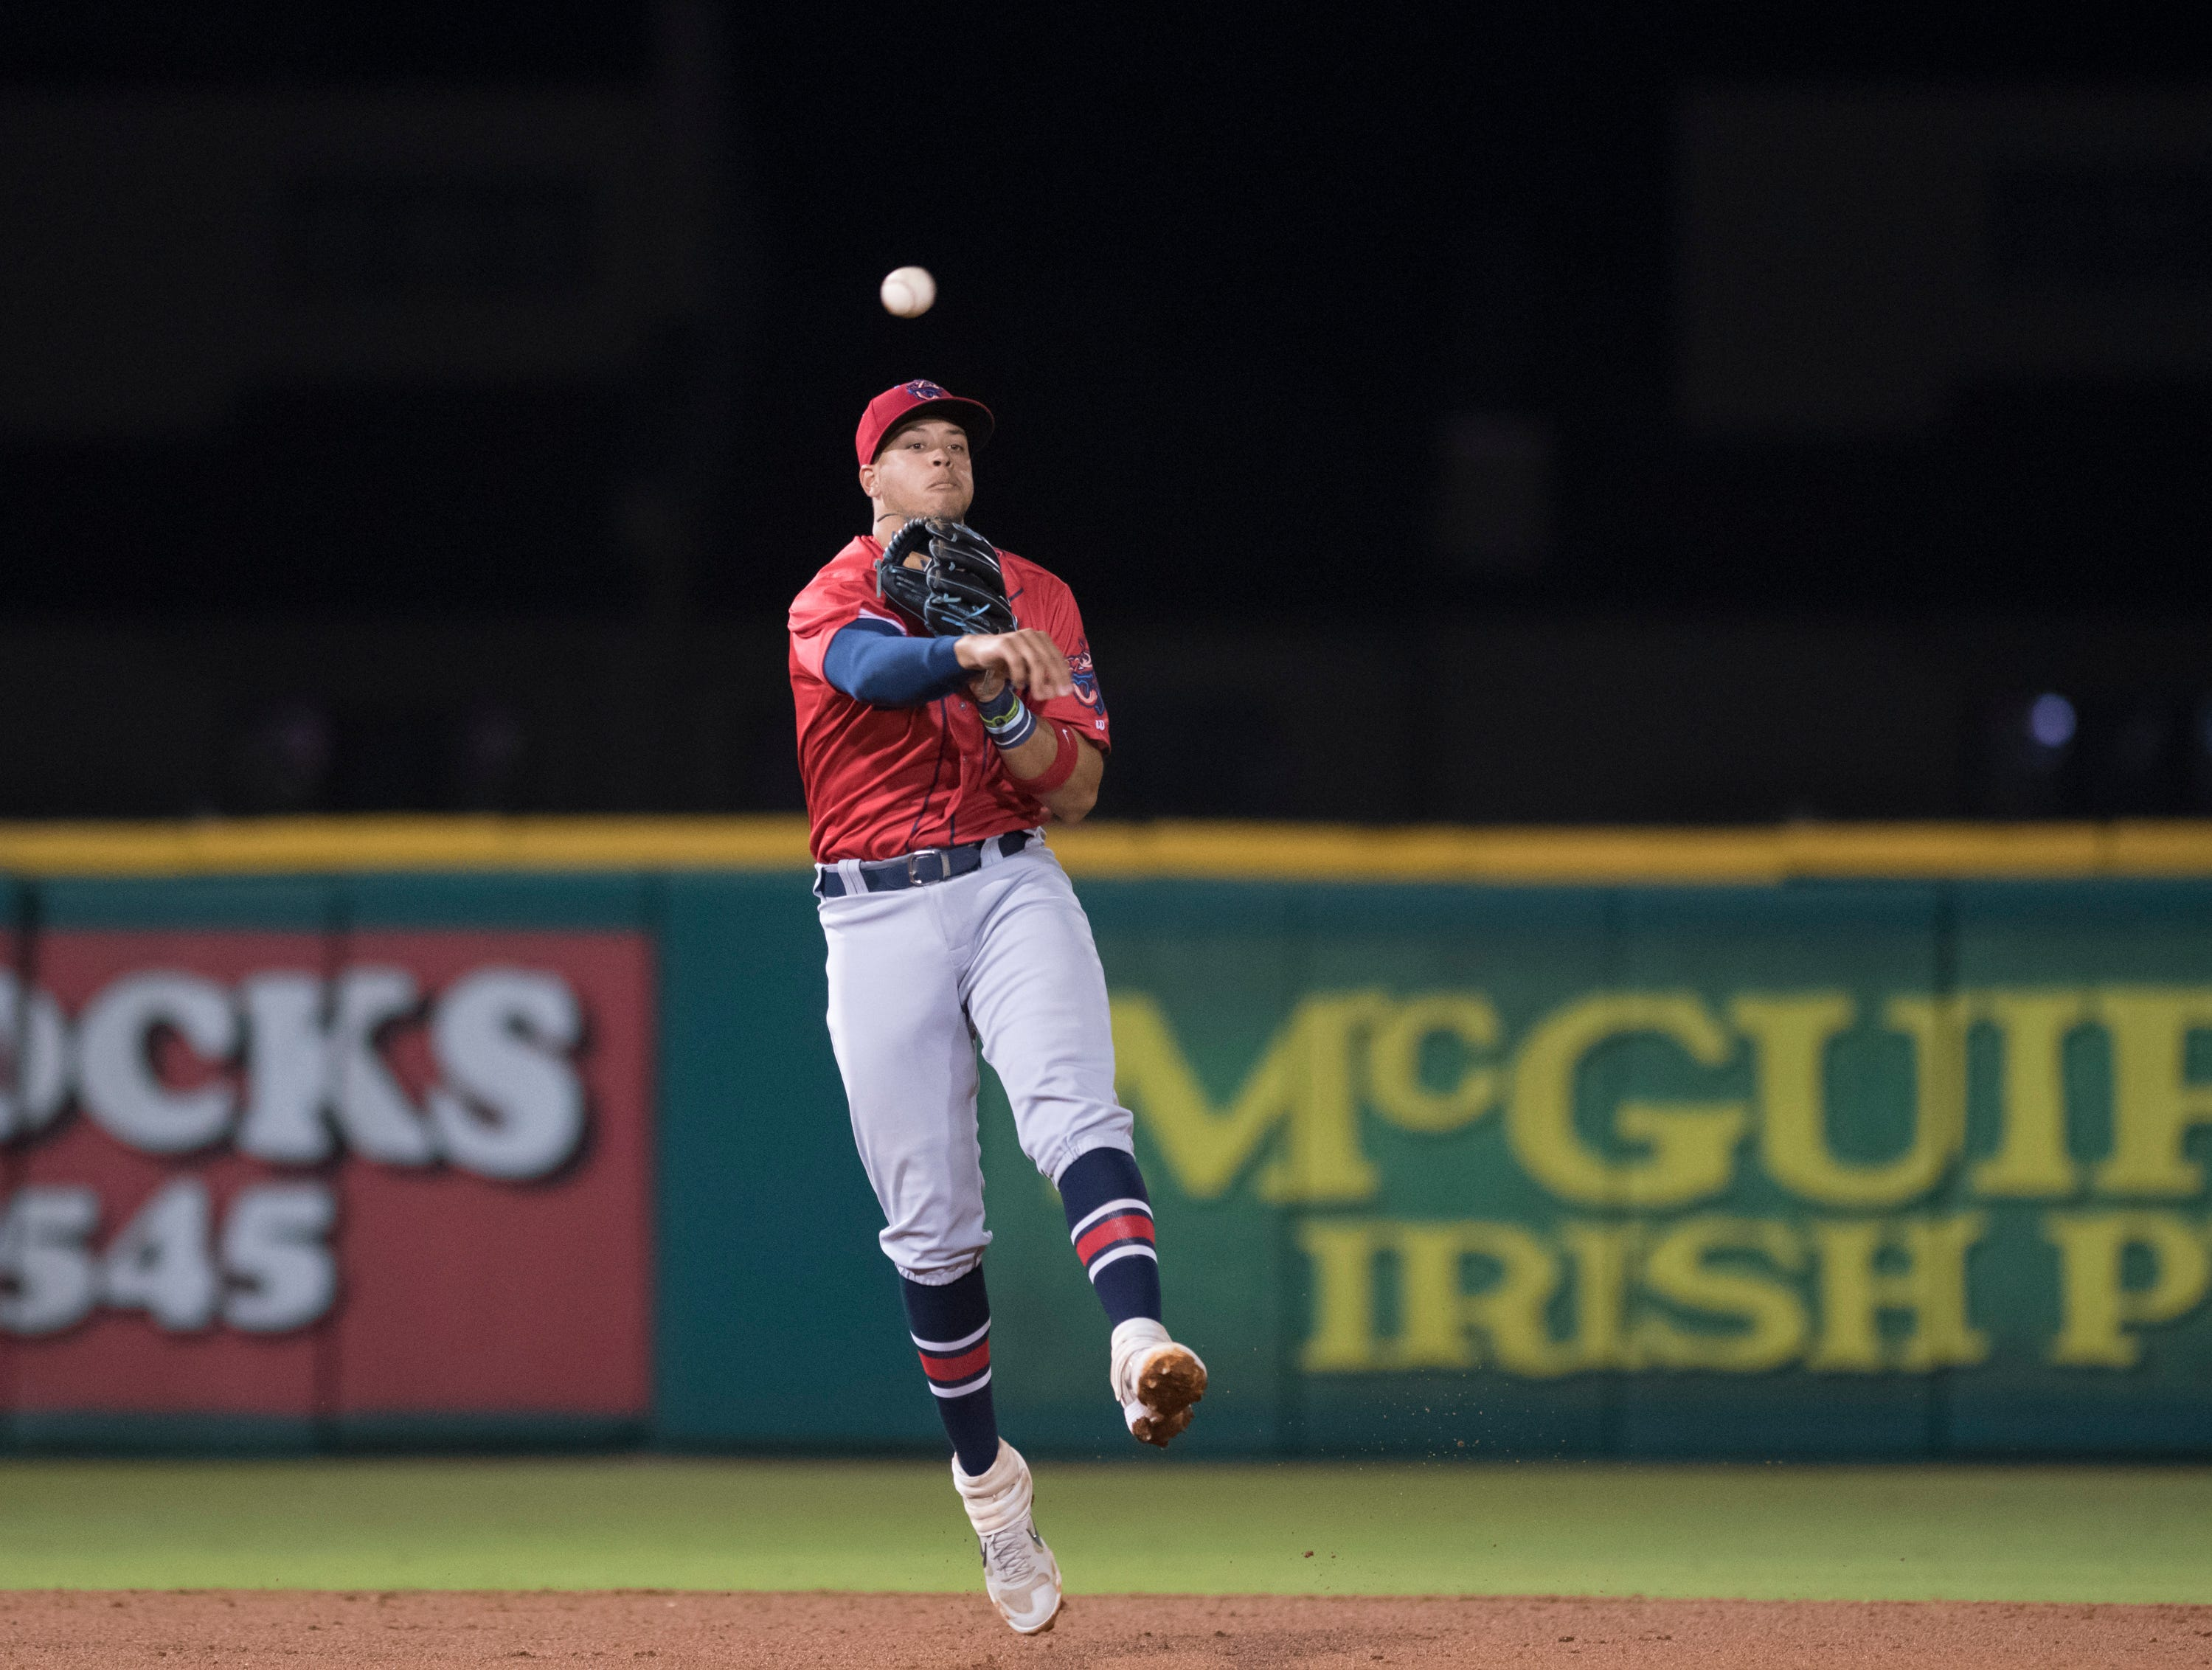 Shortstop Joe Dunand (3) fires to first for an out during the Jacksonville Jumbo Shrimp vs Pensacola Blue Wahoos baseball game in Pensacola on Friday, April 12, 2019.